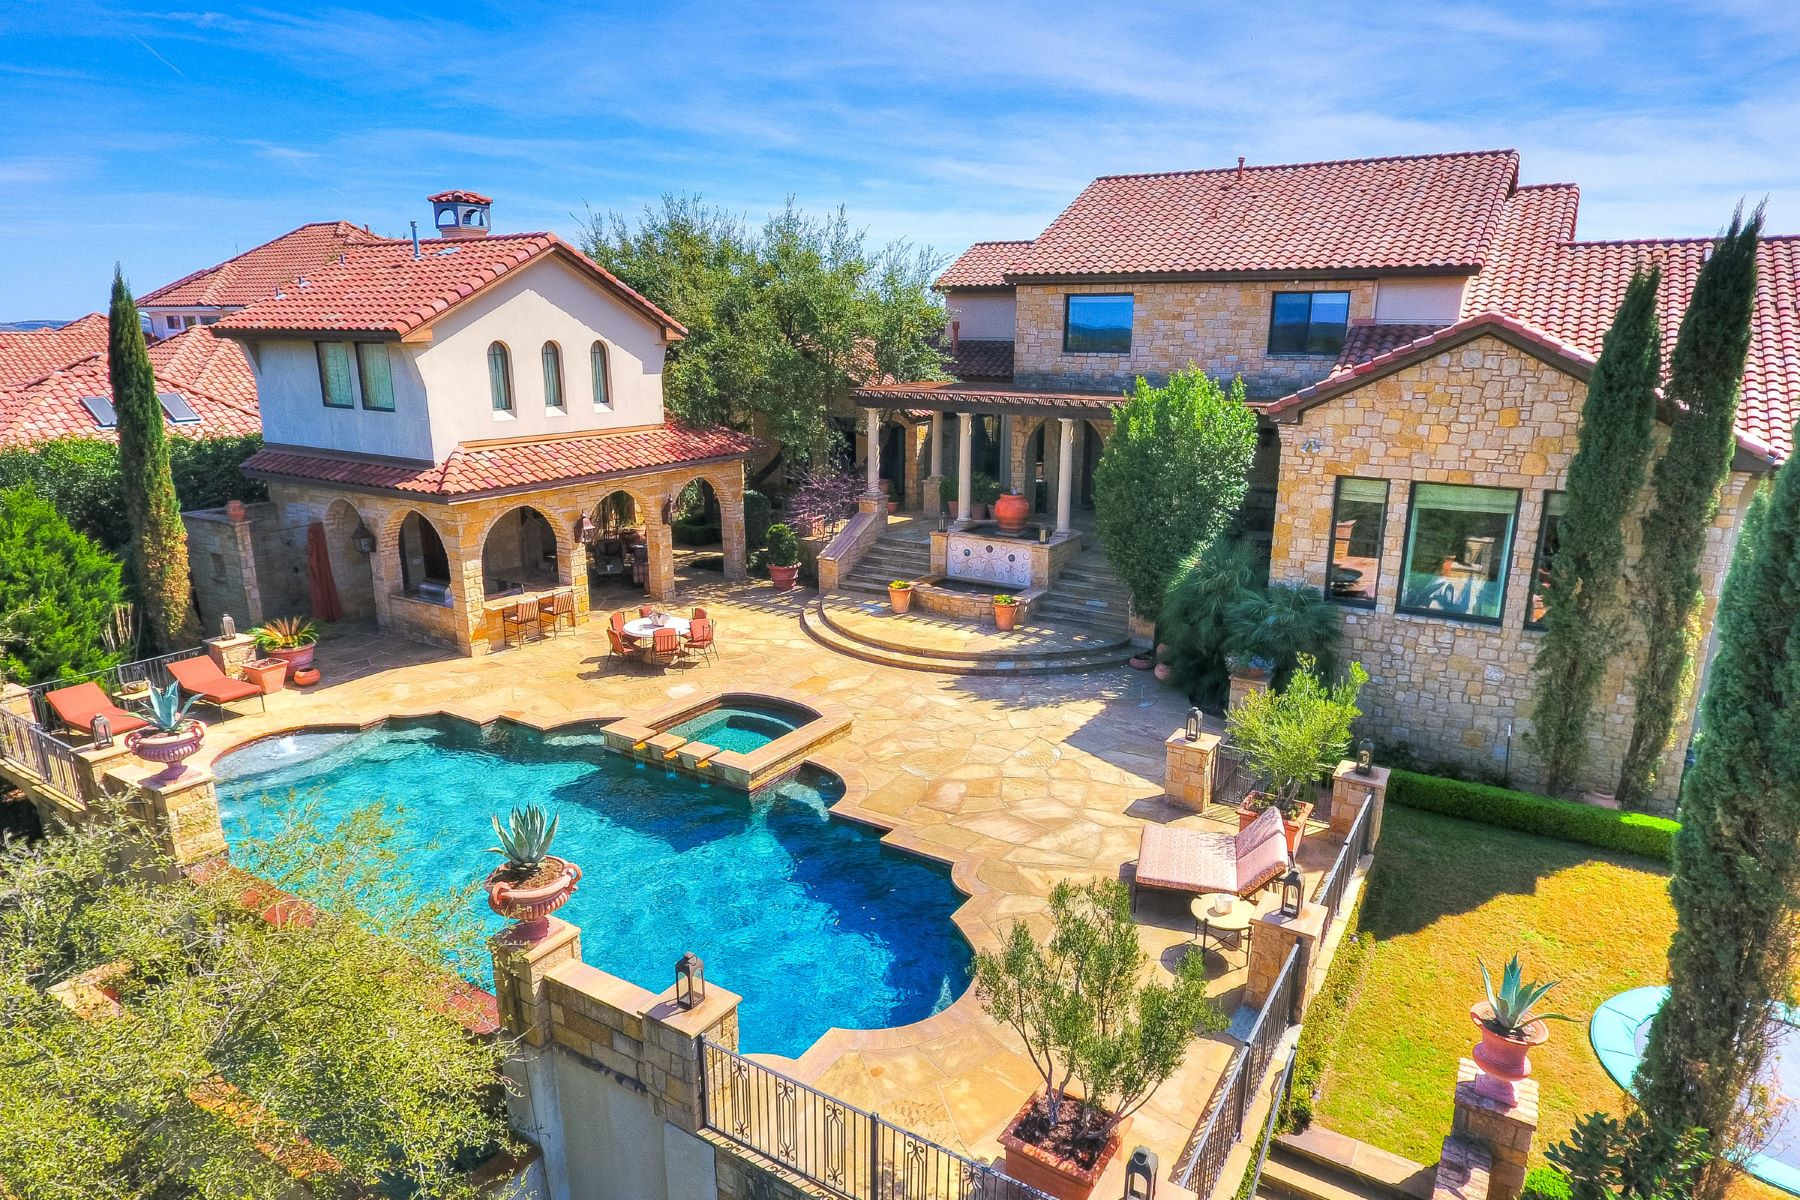 Additional photo for property listing at Villa with Supreme Amenities and Craftsmanship 216 Brandon Way Austin, Texas 78733 United States